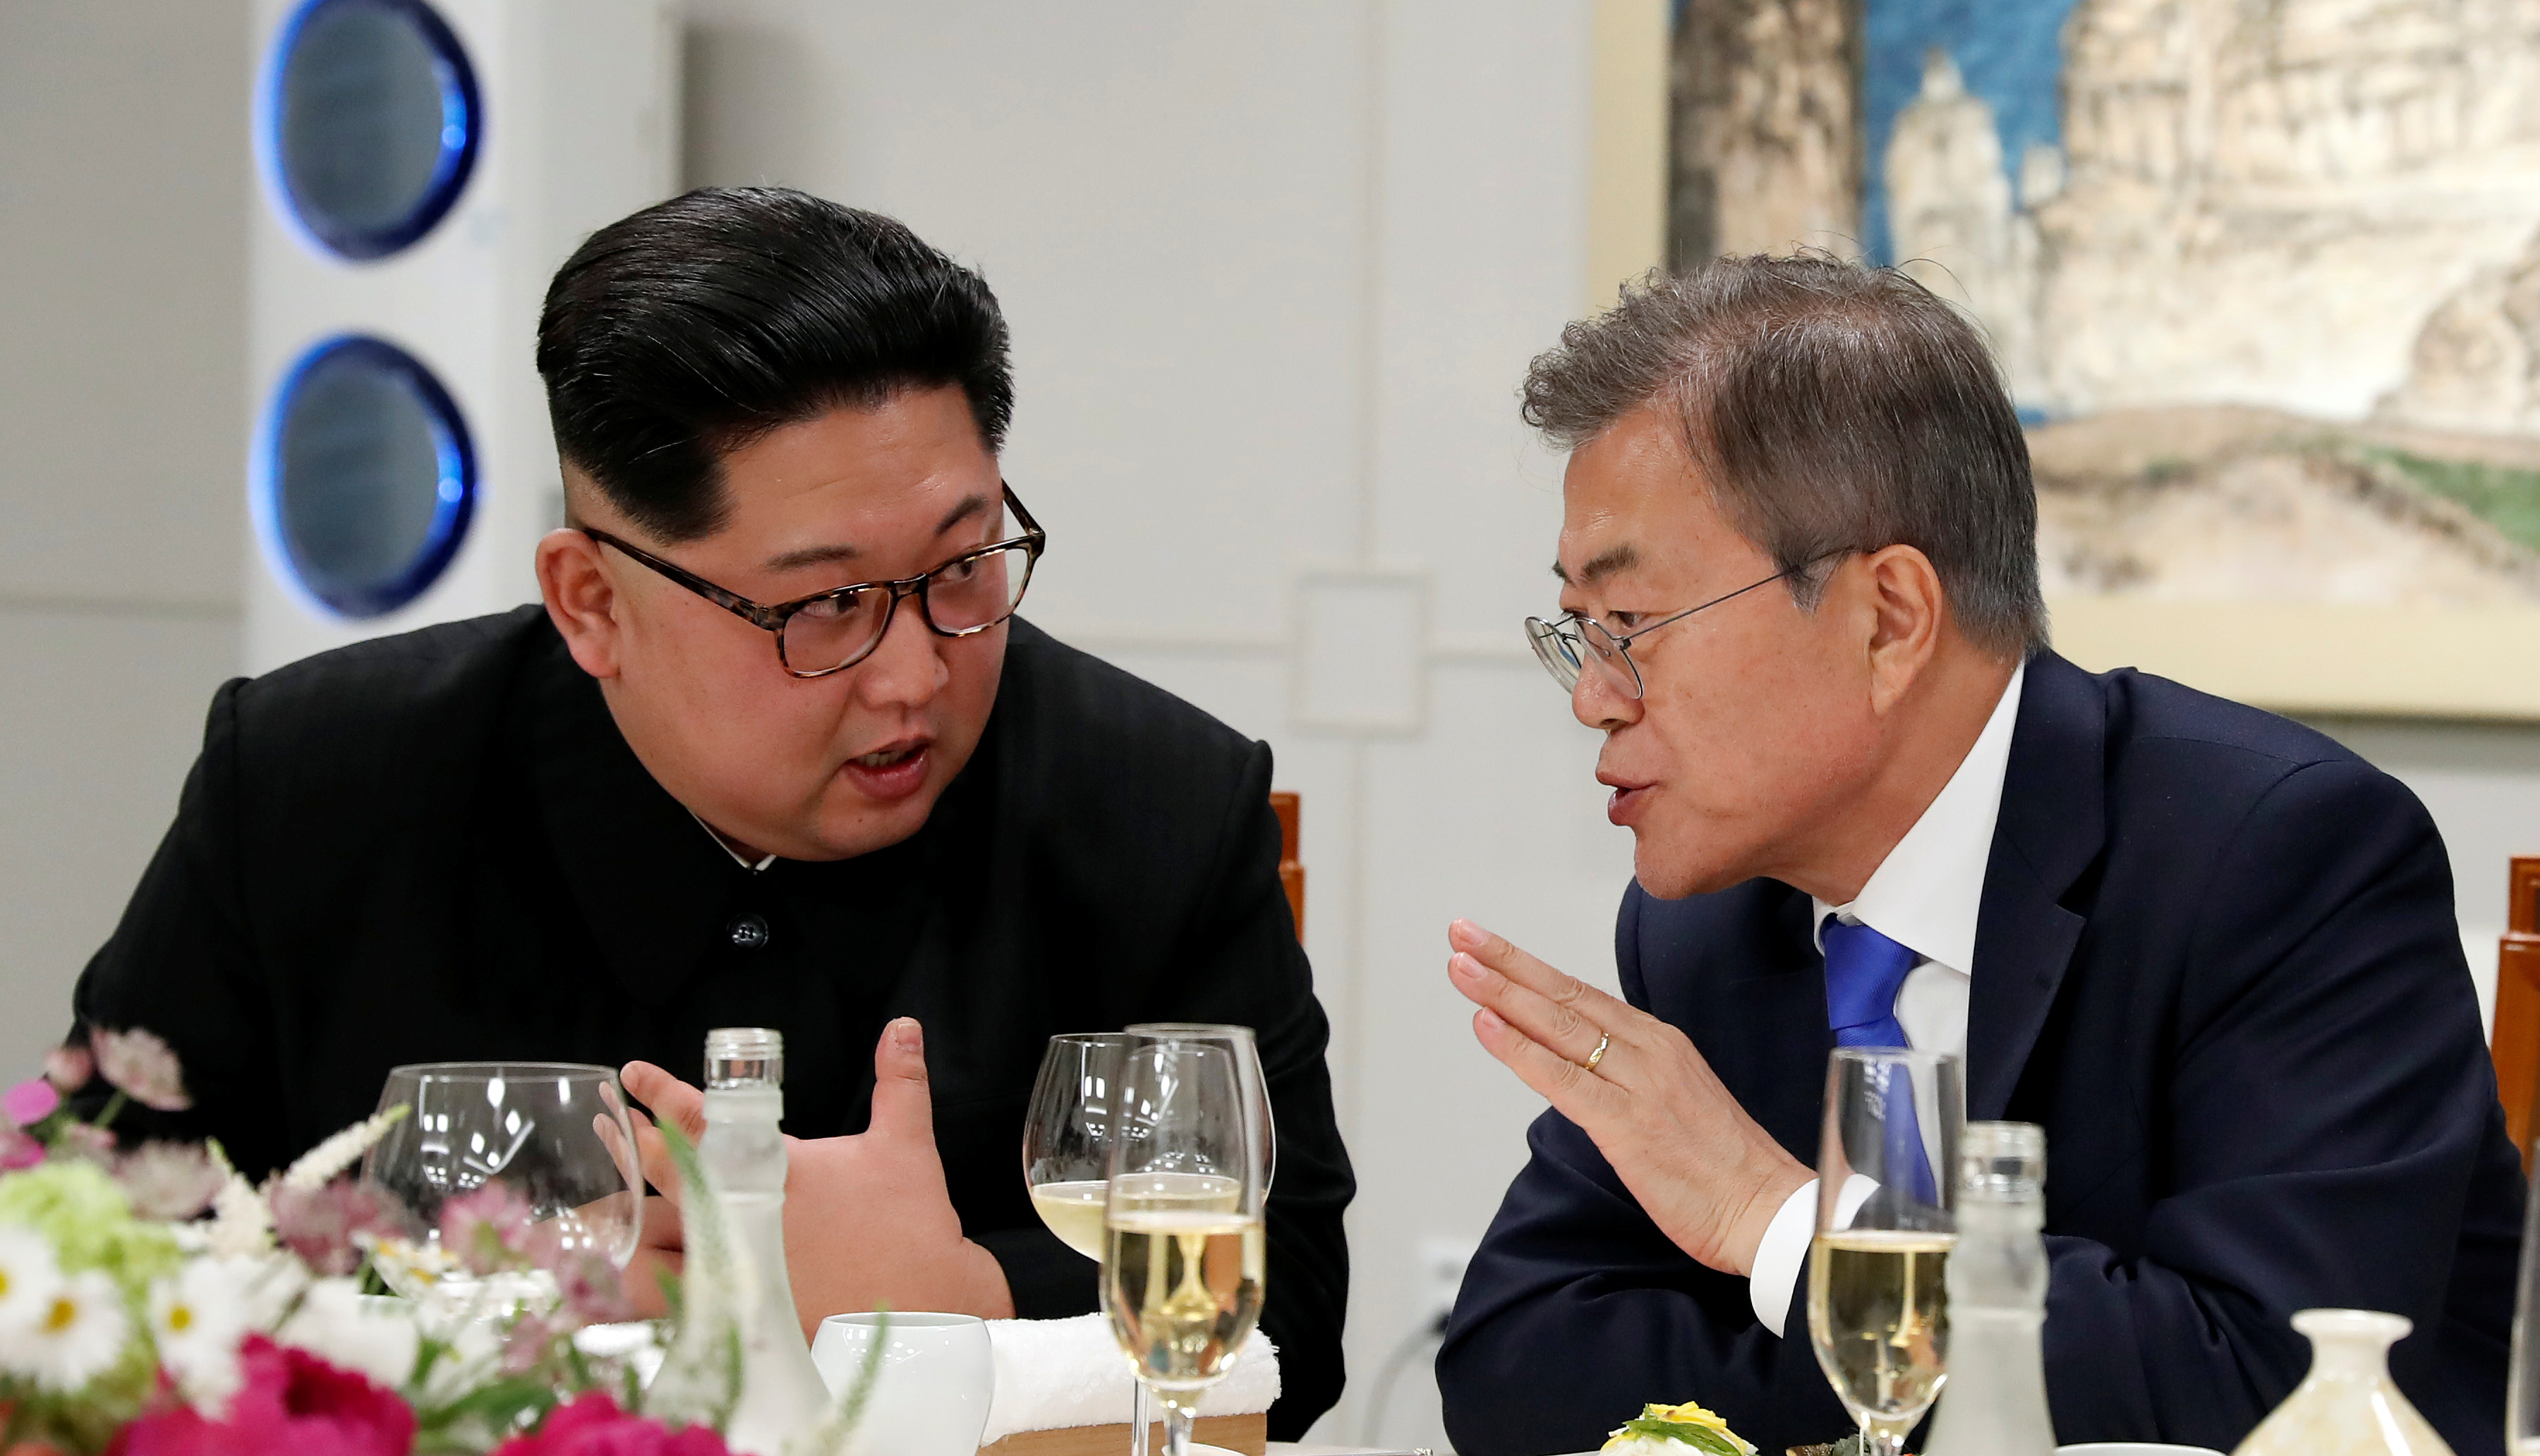 FILE PHOTO - South Korean President Moon Jae-in and North Korean leader Kim Jong Un attend a banquet on the Peace House at the truce village of Panmunjom inside the demilitarized zone separating the two Koreas, South Korea, April 27, 2018. Korea Summit Press Pool/Pool via Reuters